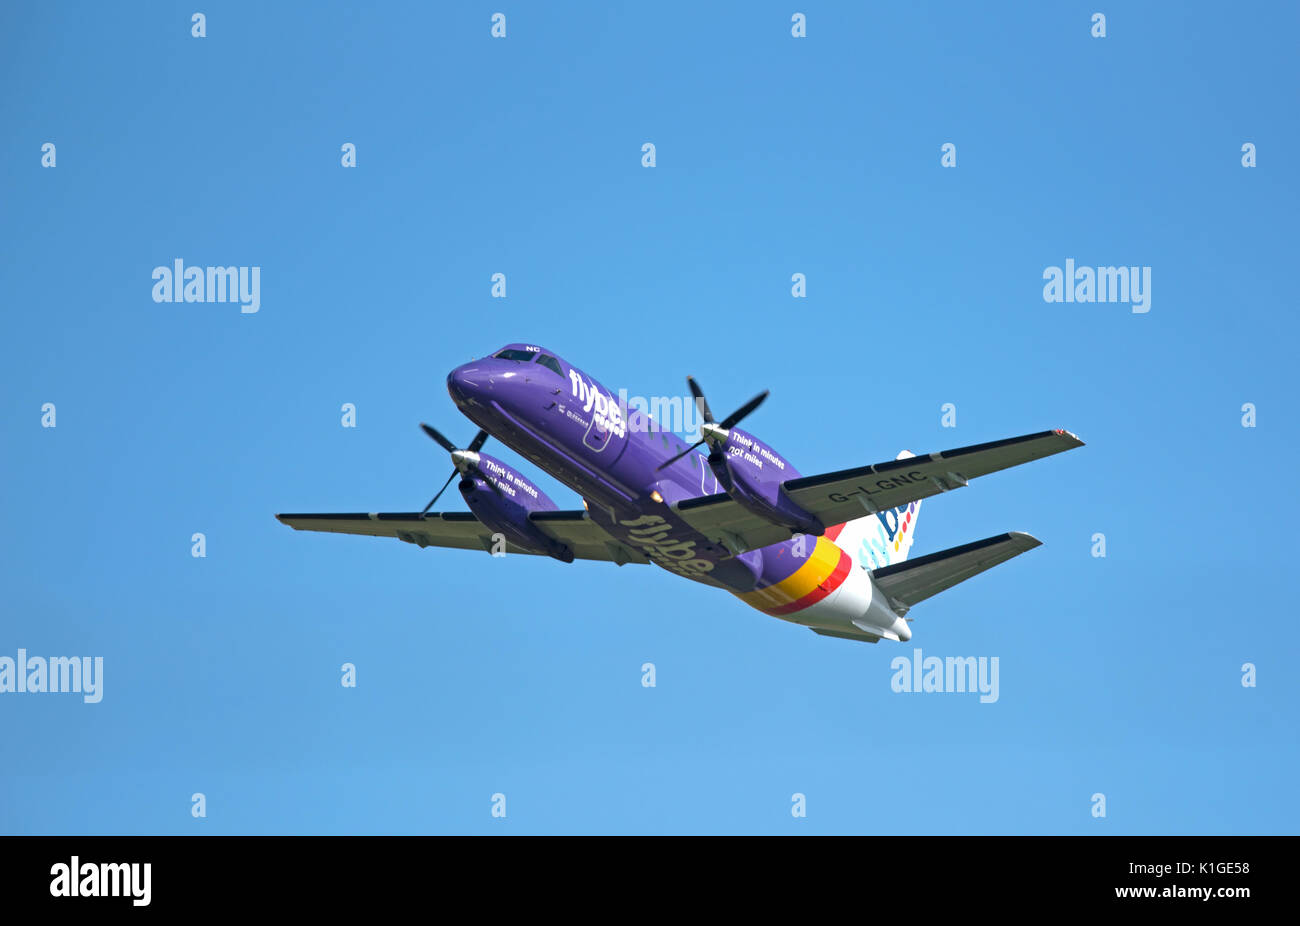 Saab 340B IN FlyBe livery departing Inverness in the Scottish Highlands for Stornaway in the outer Hebrides. Stock Photo